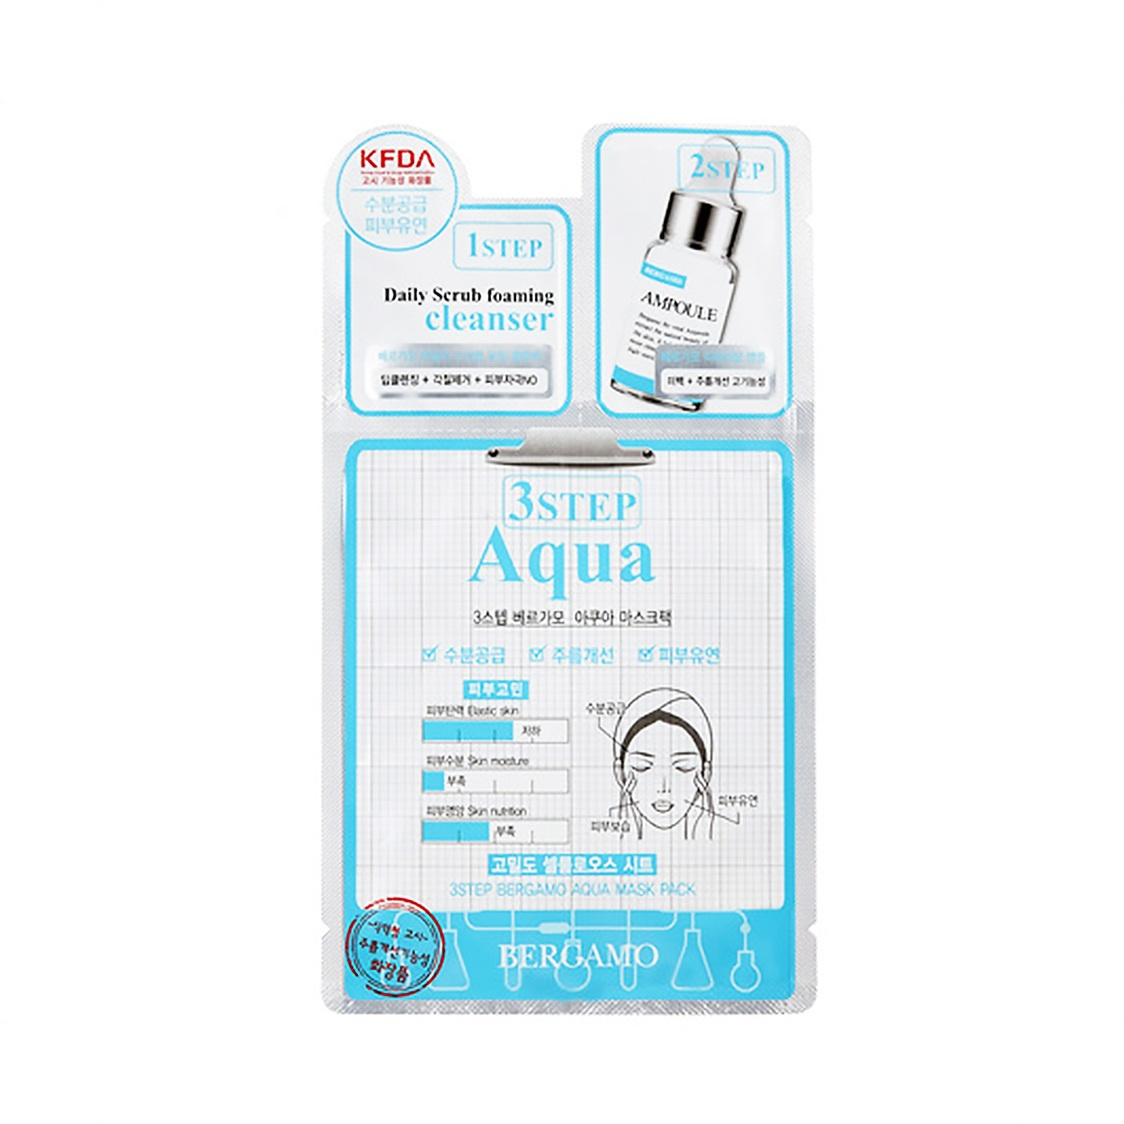 3 Step Mask - Aqua 28ml